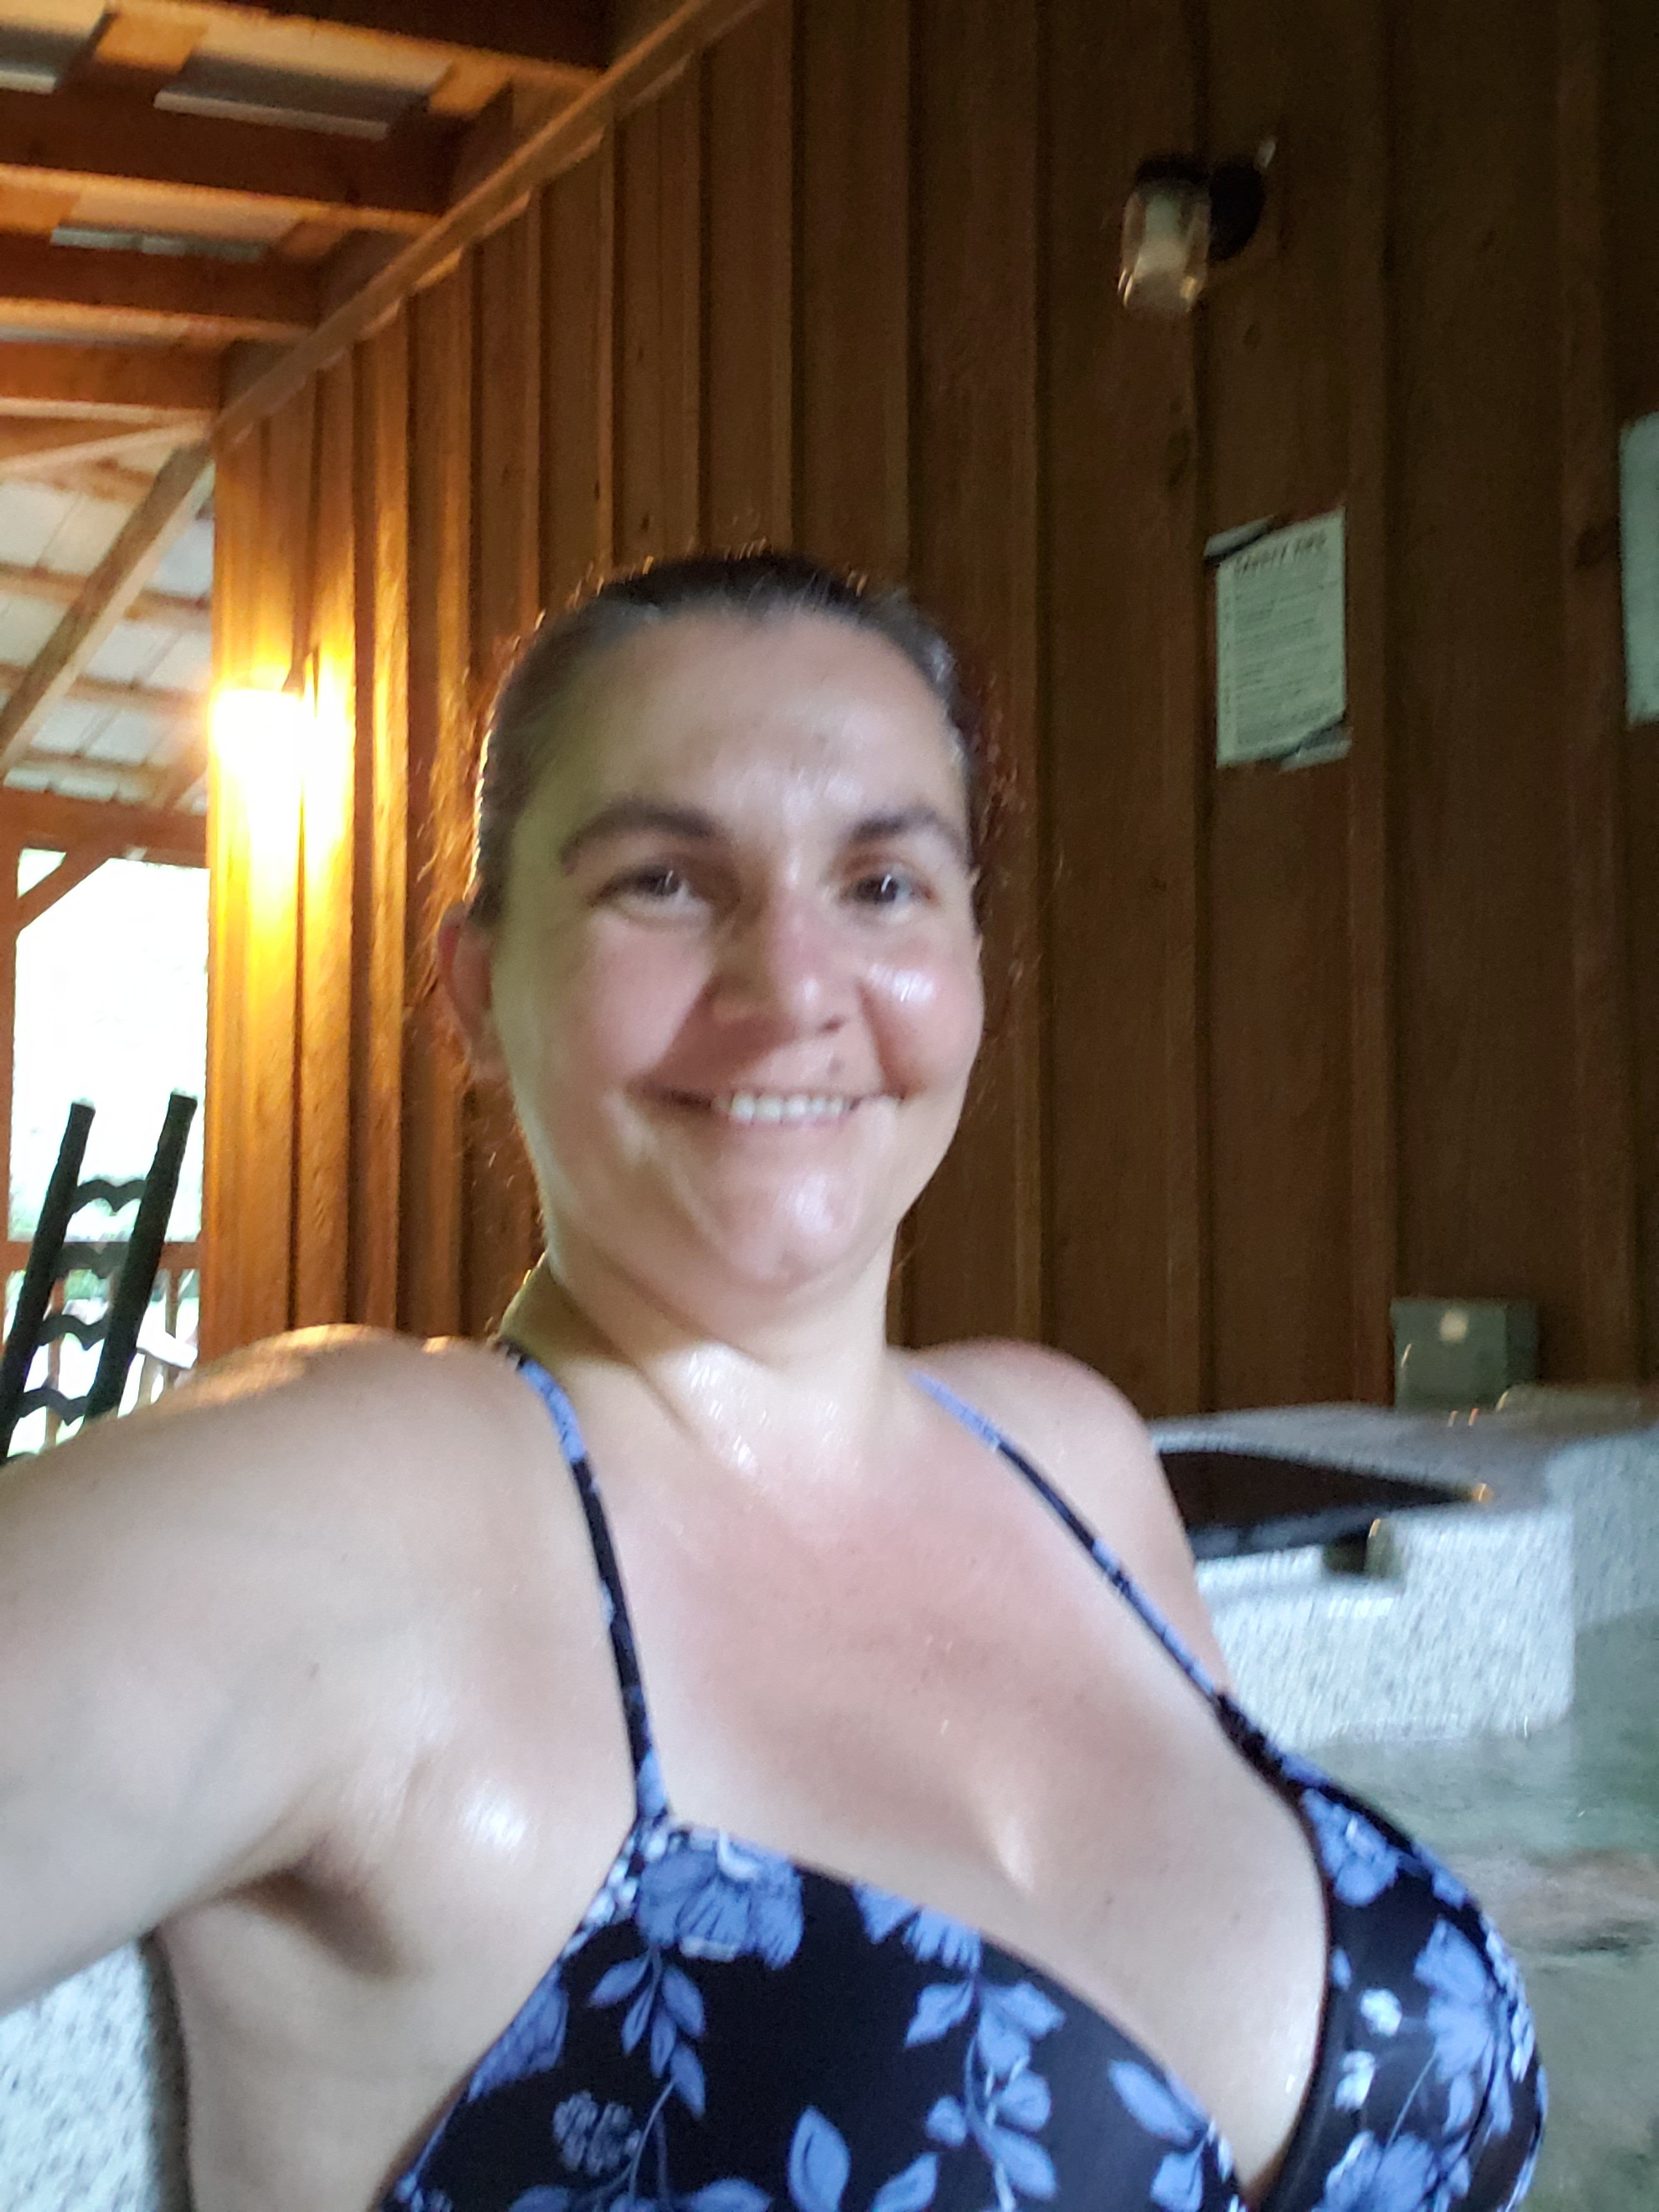 42-year-old, Single From: Sidney, OH, United States